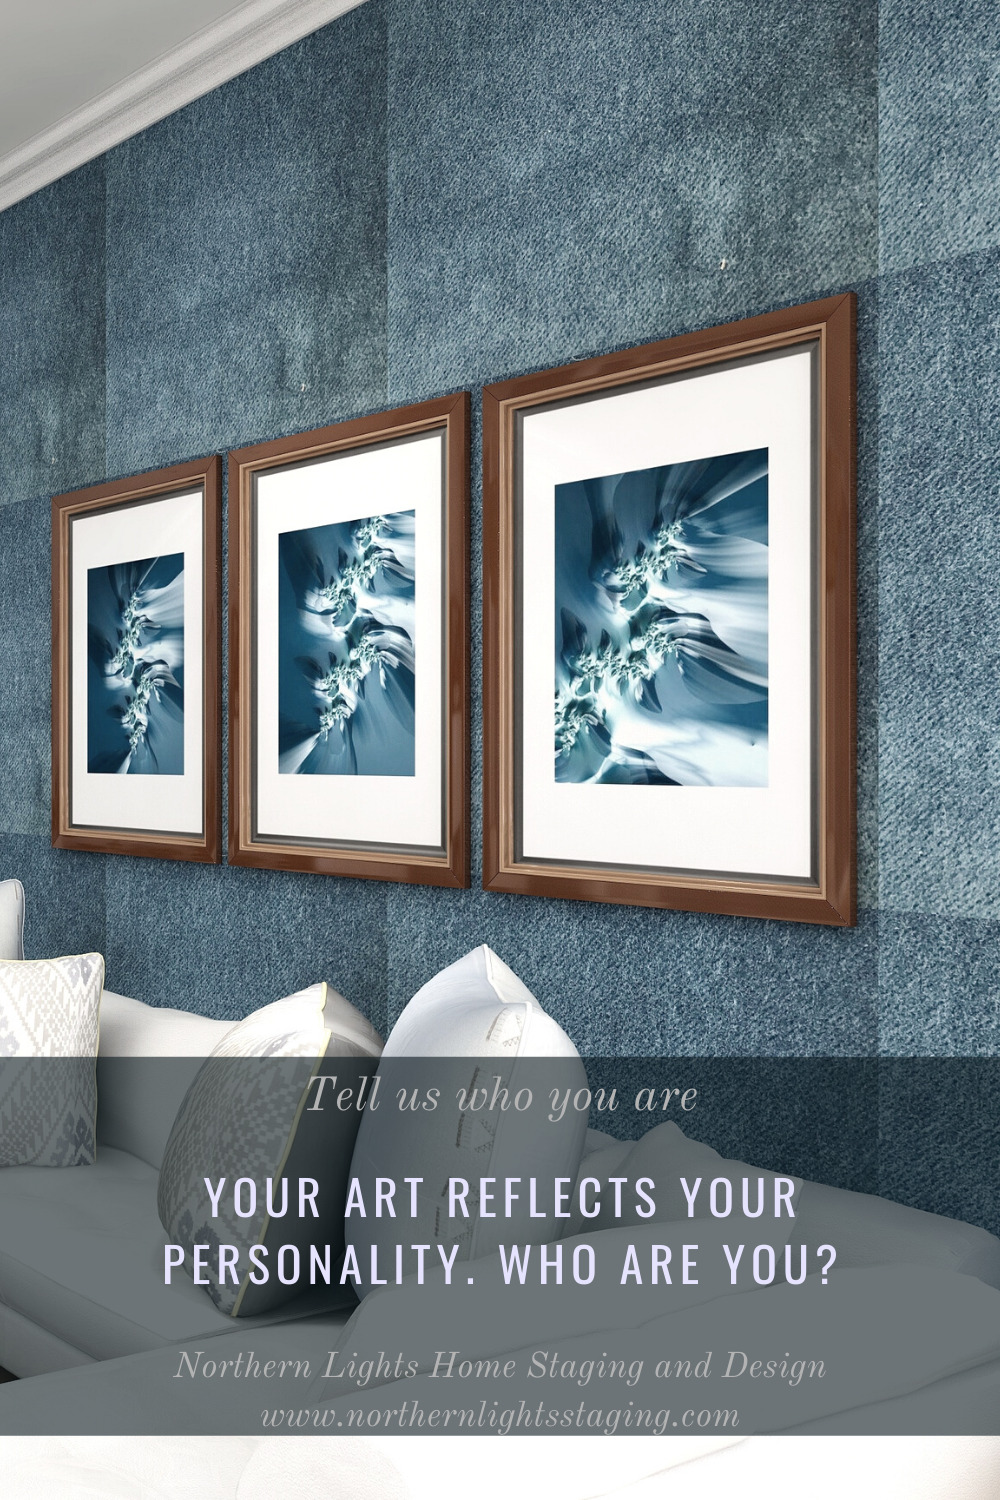 Your Art Reflects Your Personality. Who are You?